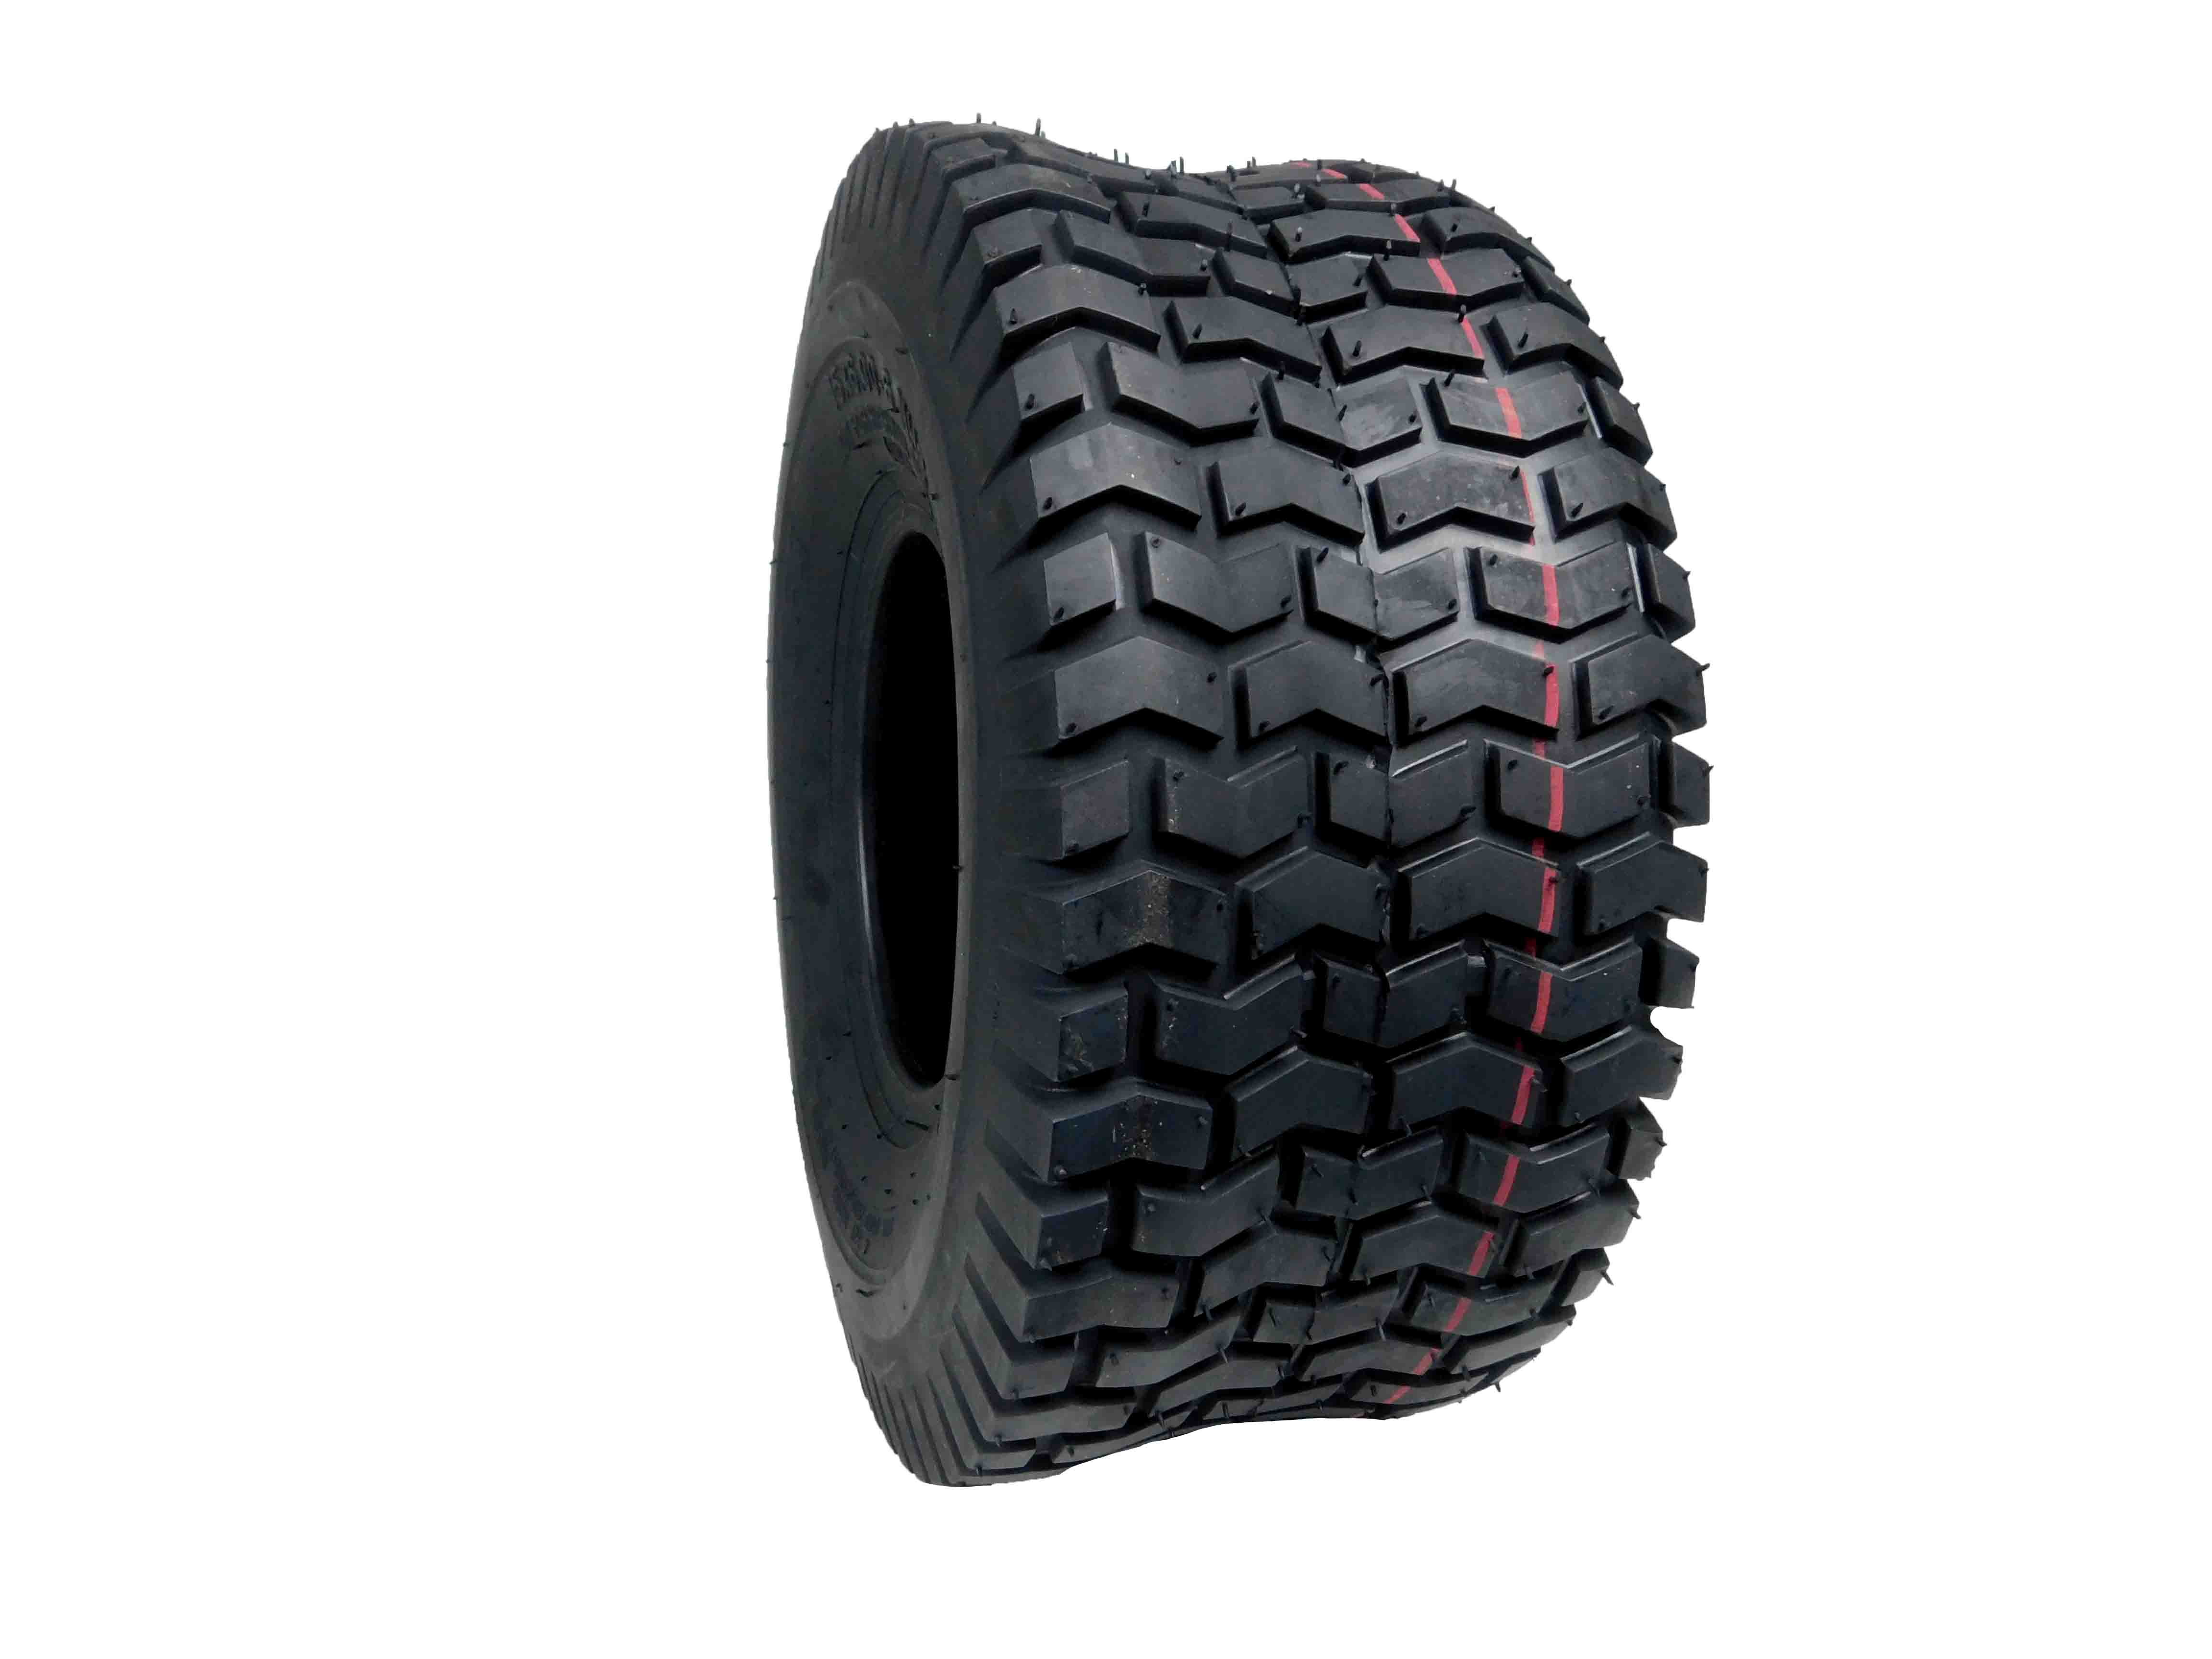 MASSFX-15x6-6-Lawn-Mower-Tires-4ply-image-1